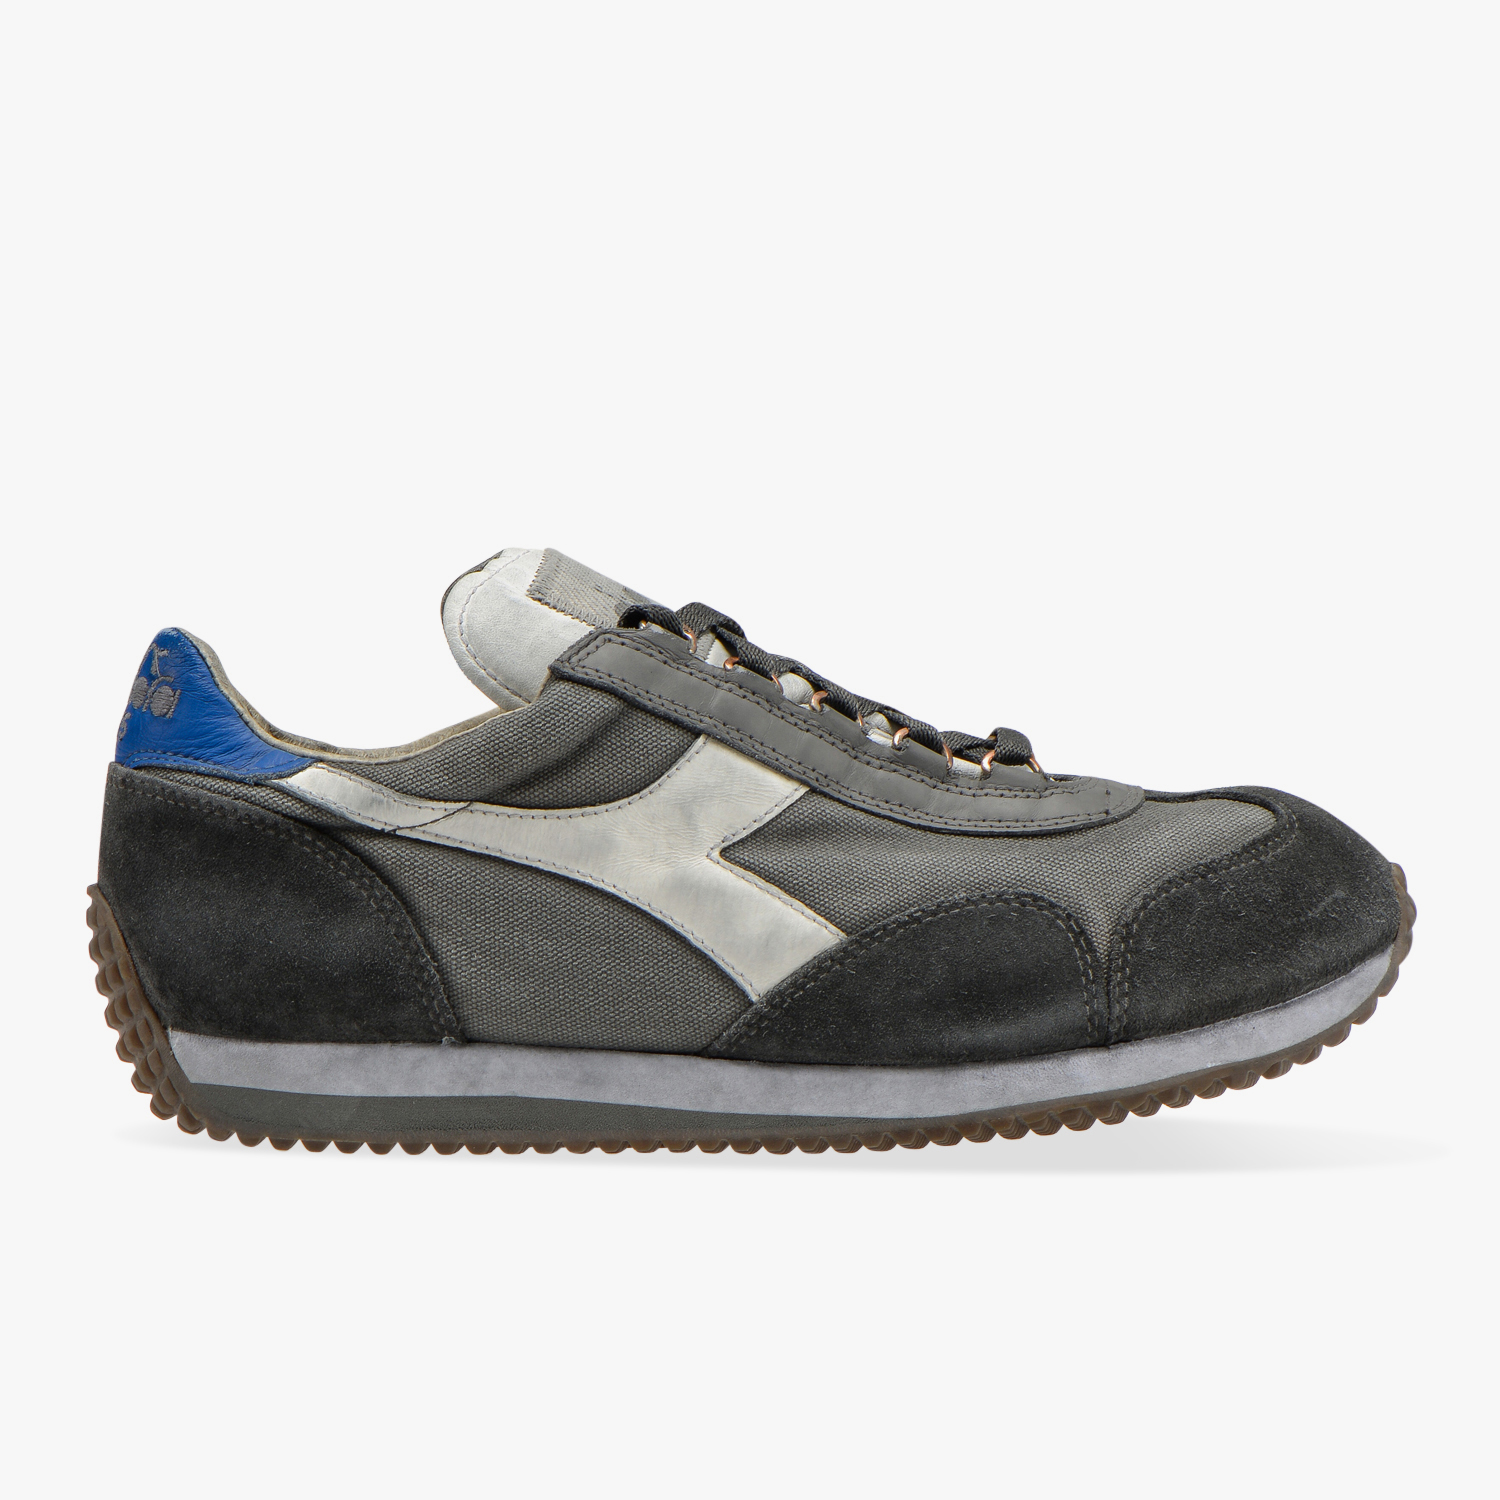 Diadora Heritage EQUIPE SW DIRTY EVO - Diadora Online Shop IT d98842422b4